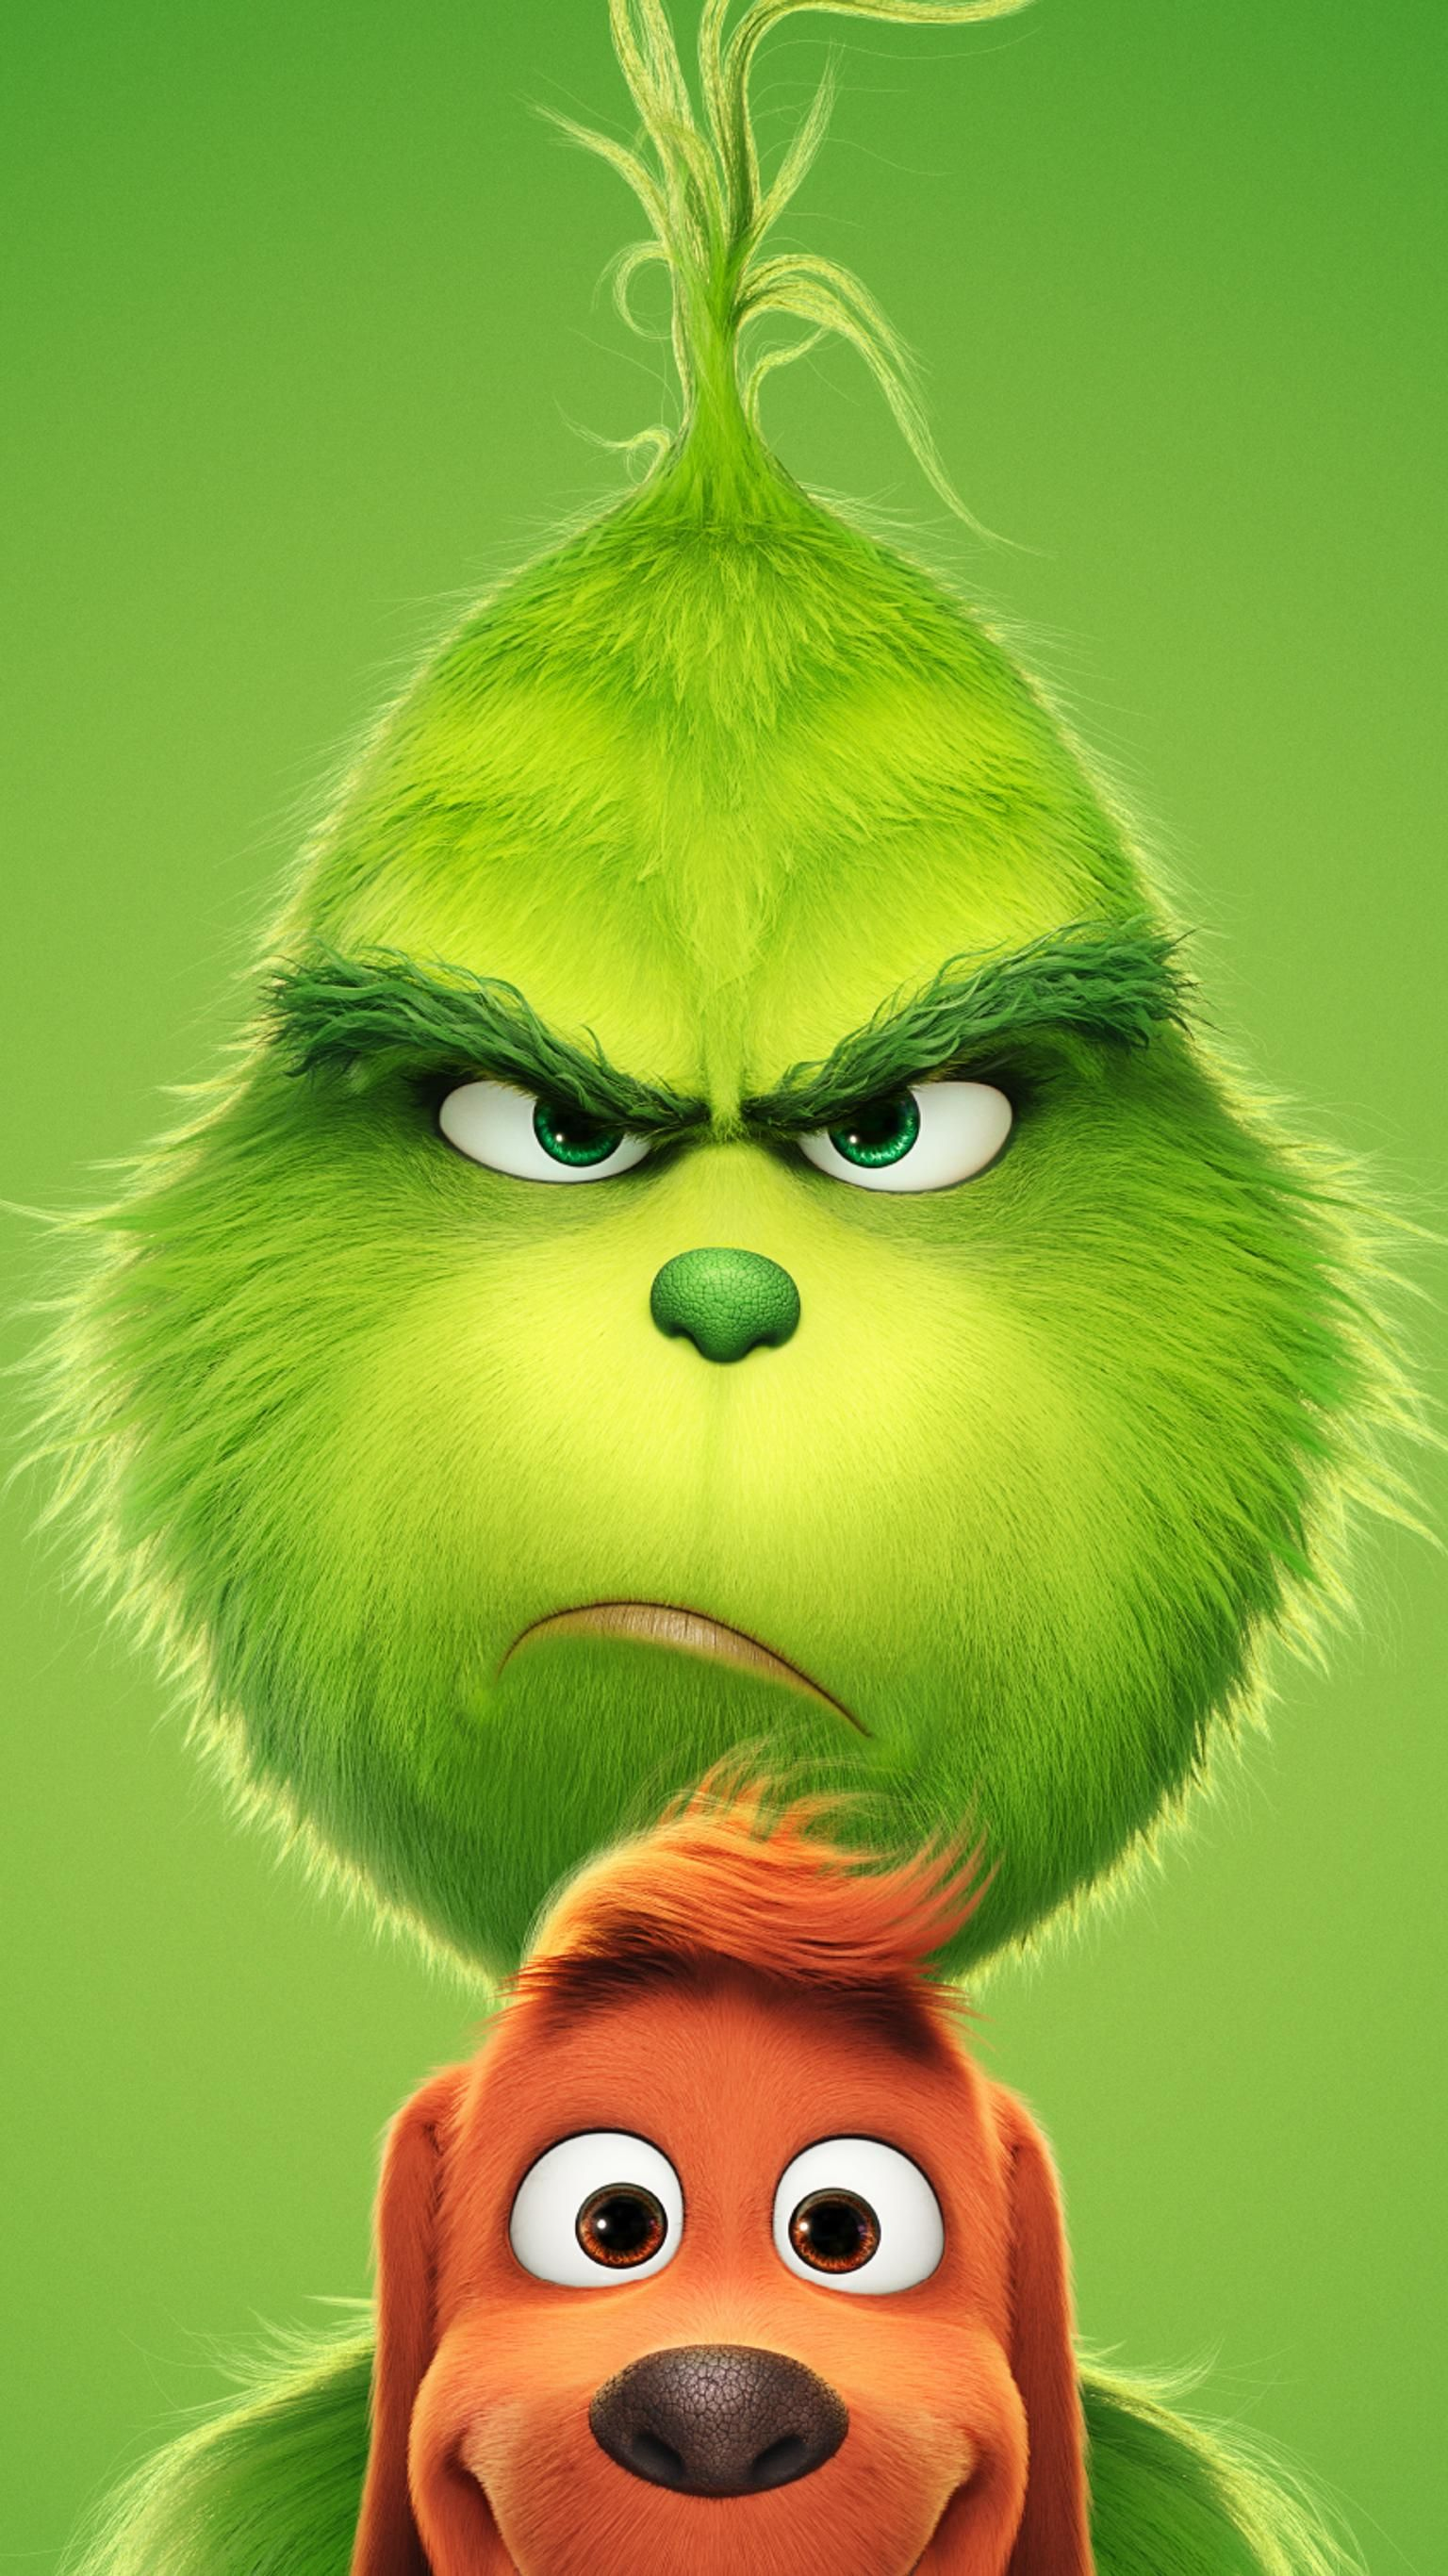 The Grinch 2018 Phone Wallpaper The Grinch Full Movie The Grinch Movie Watch The Grinch